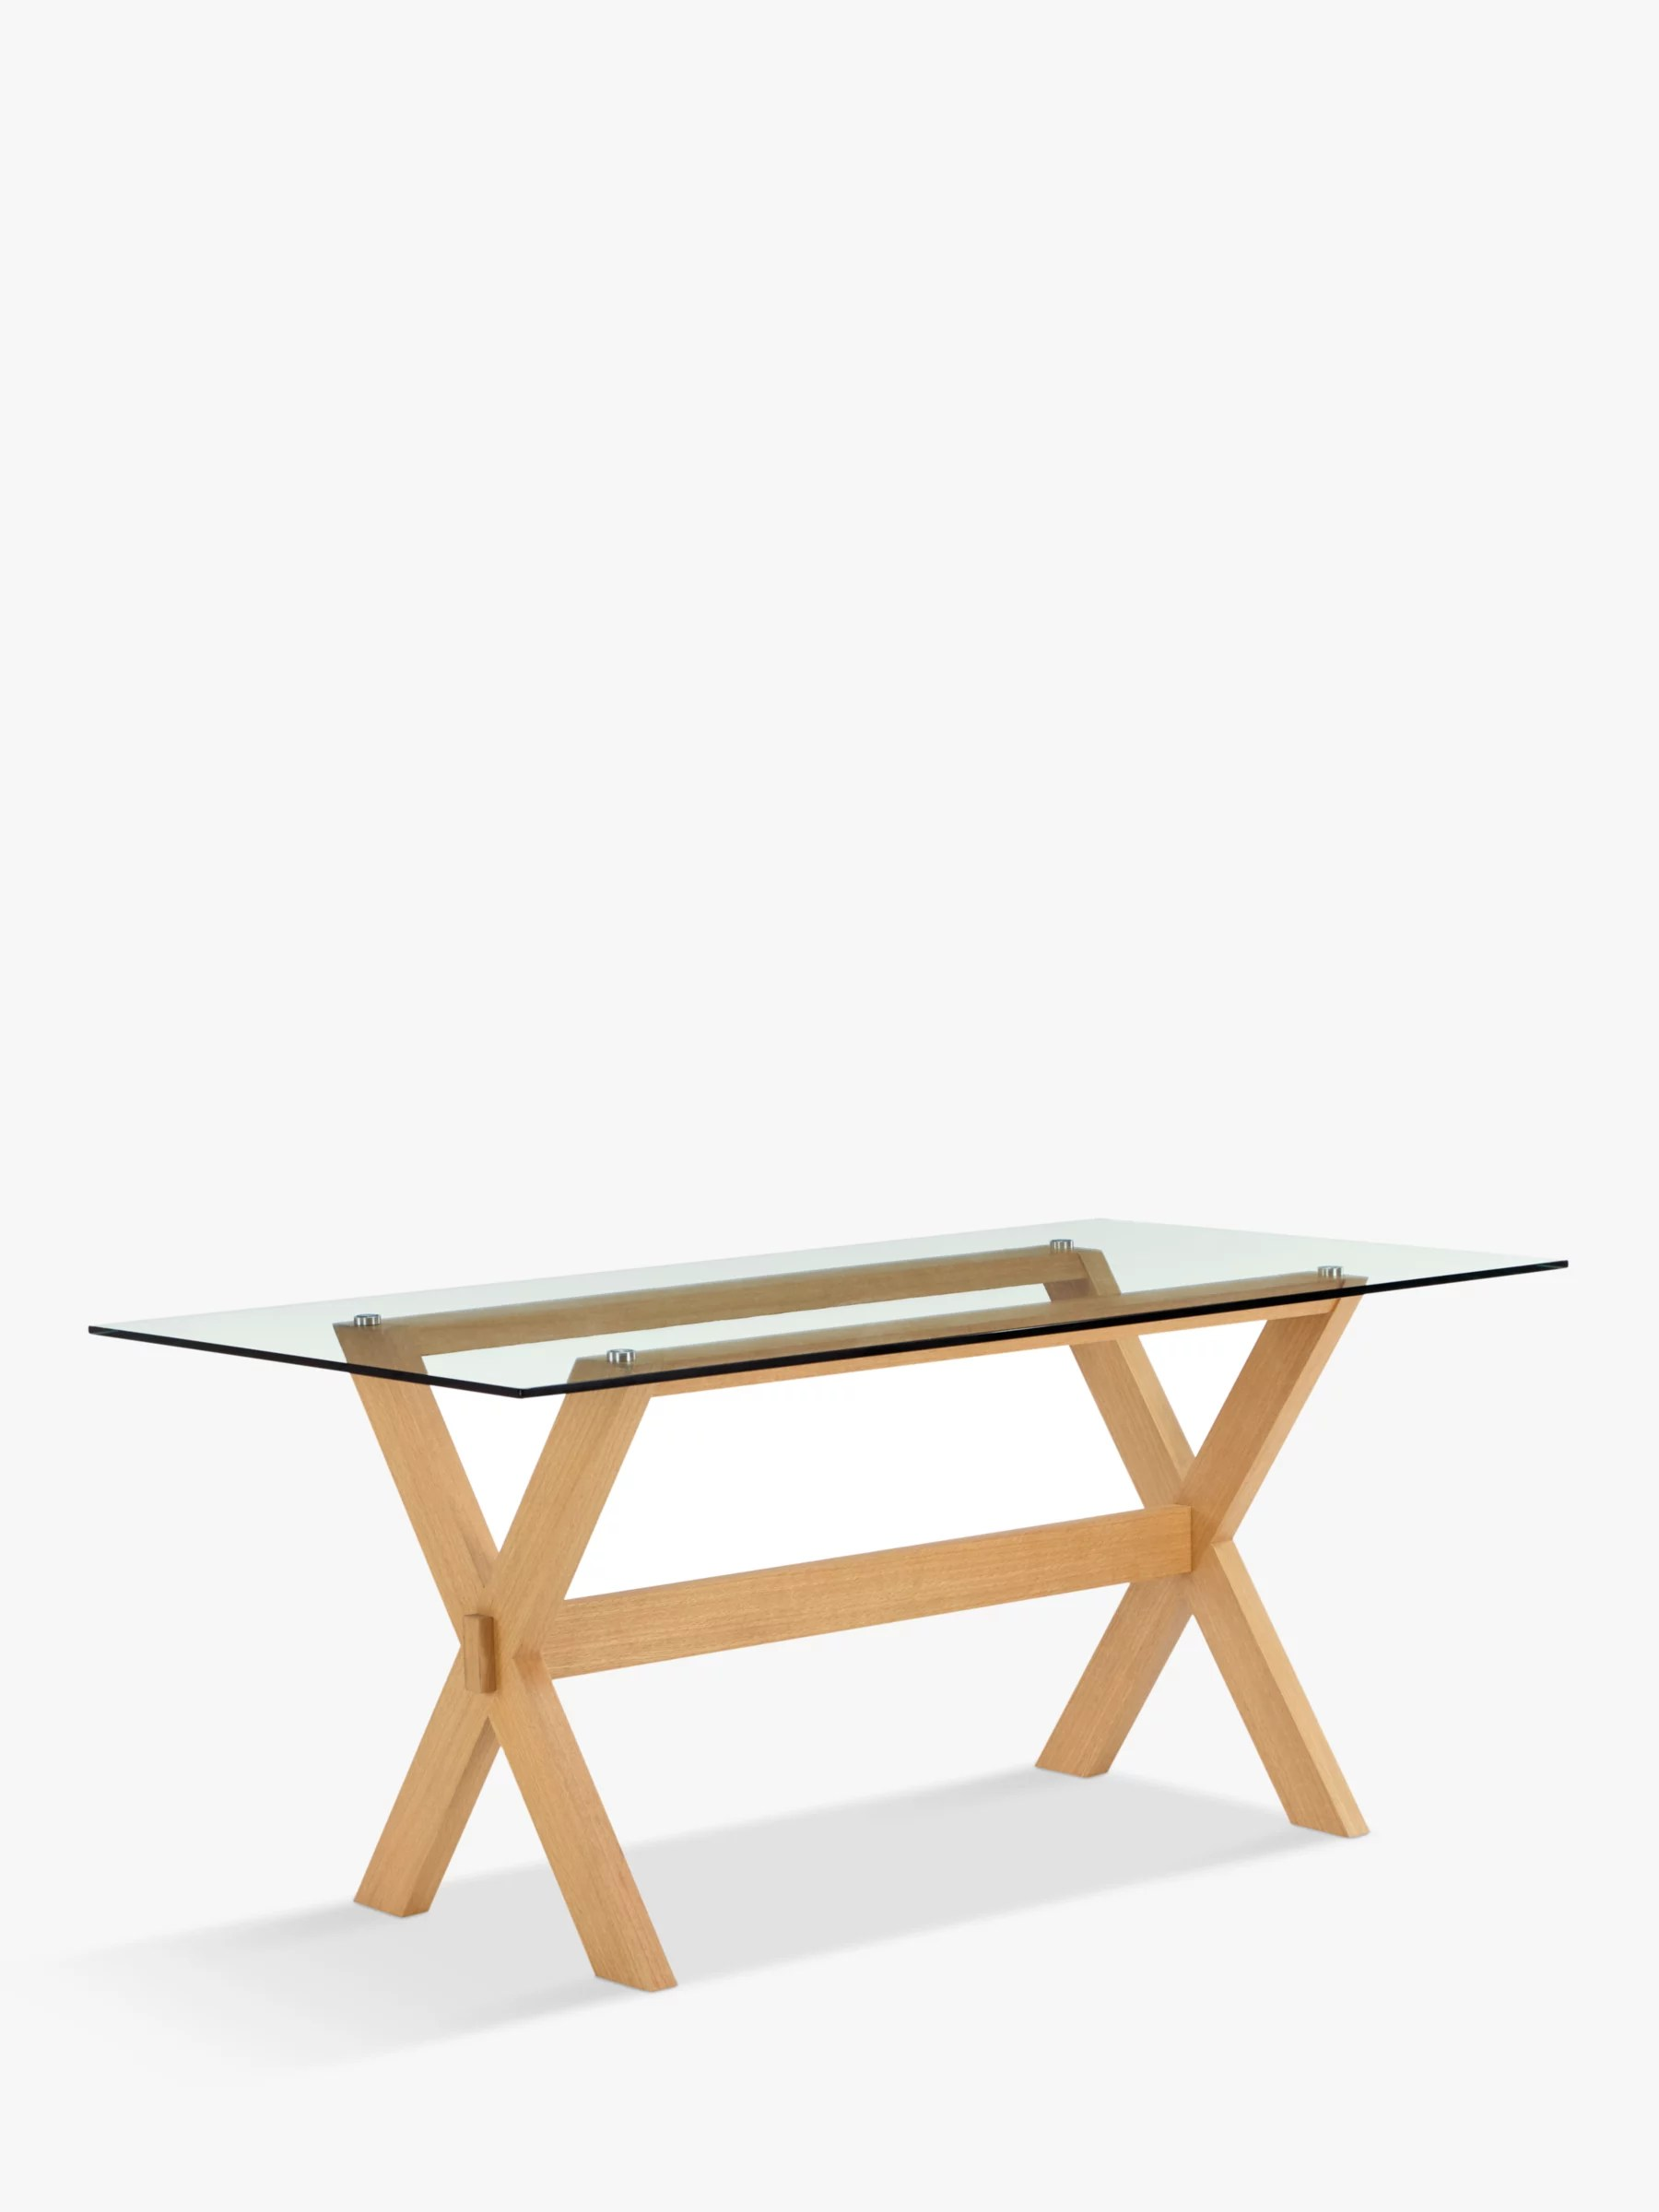 glass top kitchen table value city tables john lewis partners lydia 8 seater dining at buyjohn online johnlewis